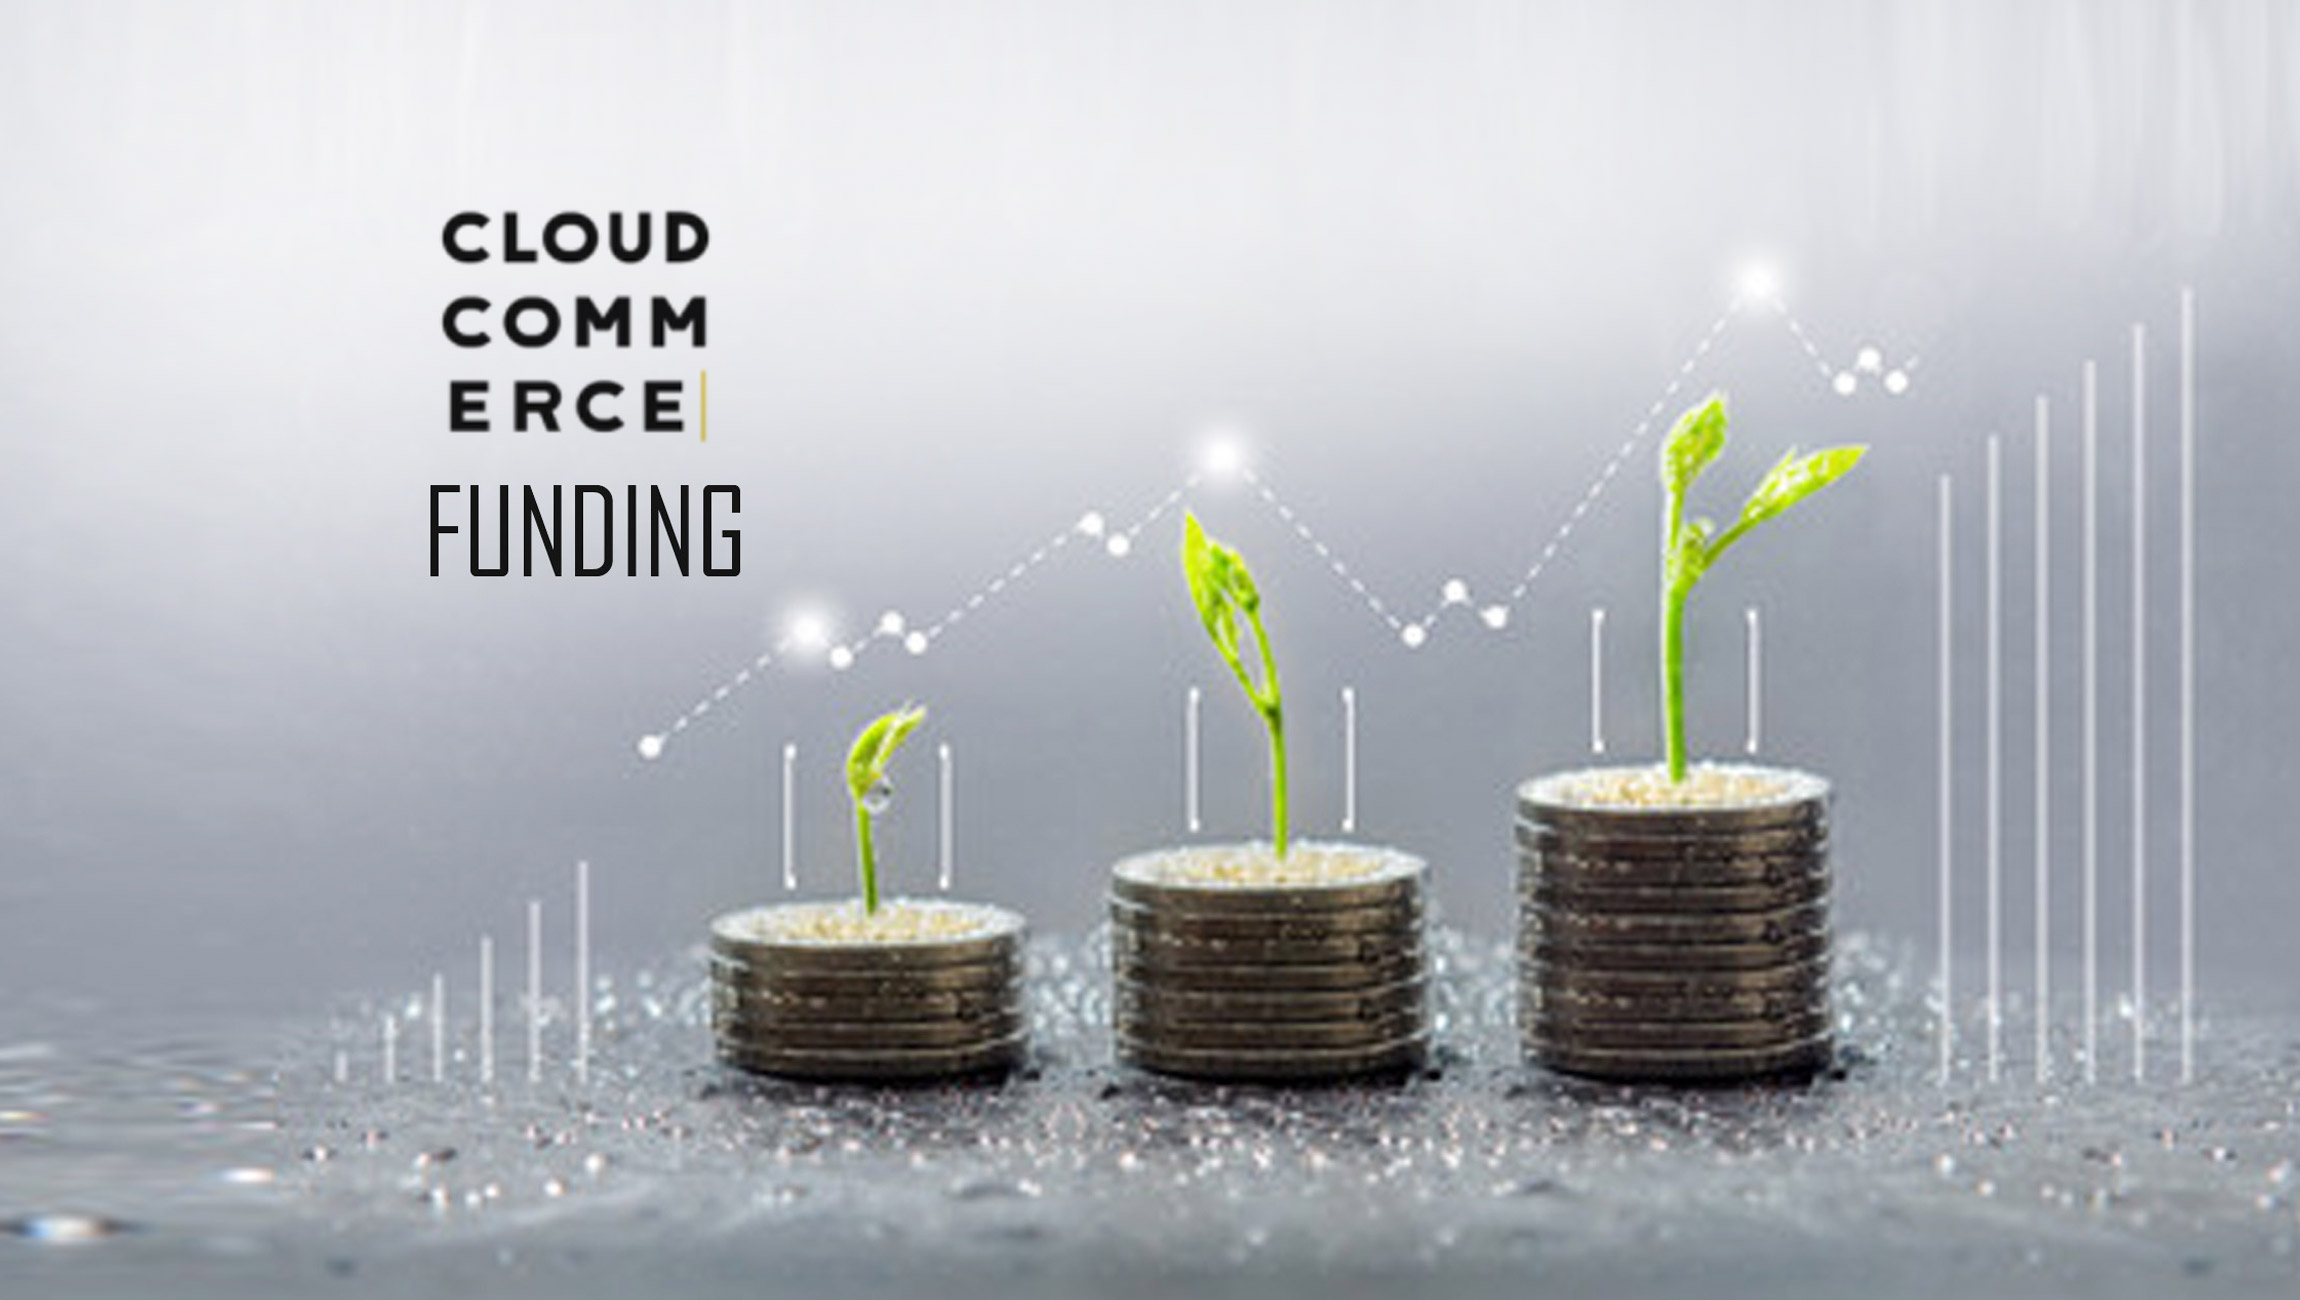 CloudCommerce to Benefit from $5.9 Trillion Artificial Intelligence Market Opportunity